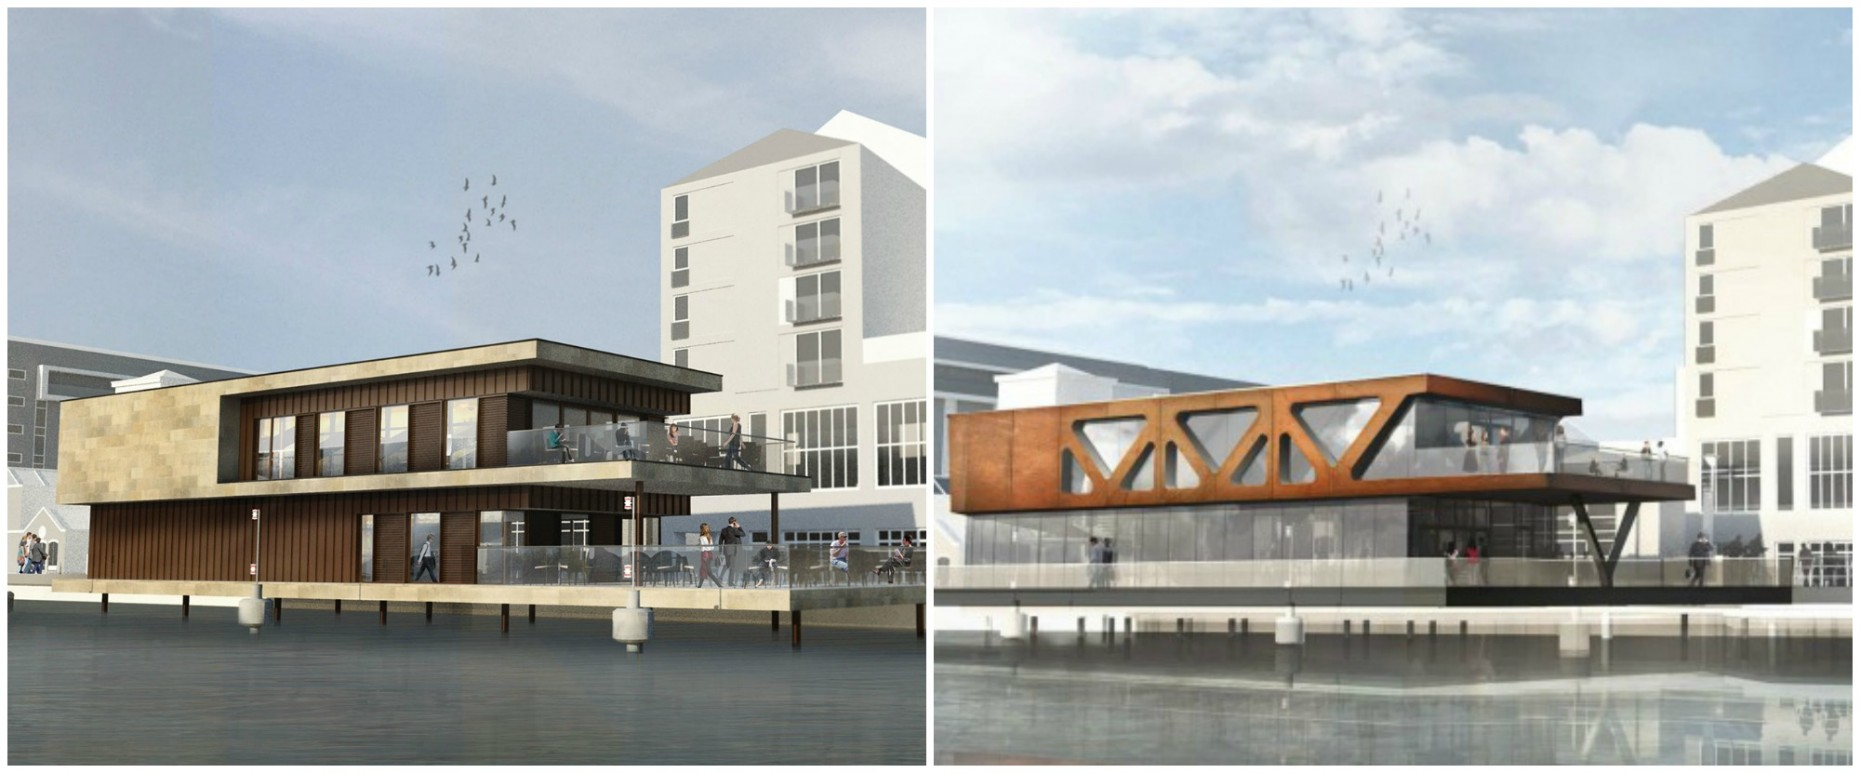 Initial designs (L) vs the new designs for the Brayford's second floating restaurant, with the viewing platform maintained and refurbished. Artist impression: Stem Architects